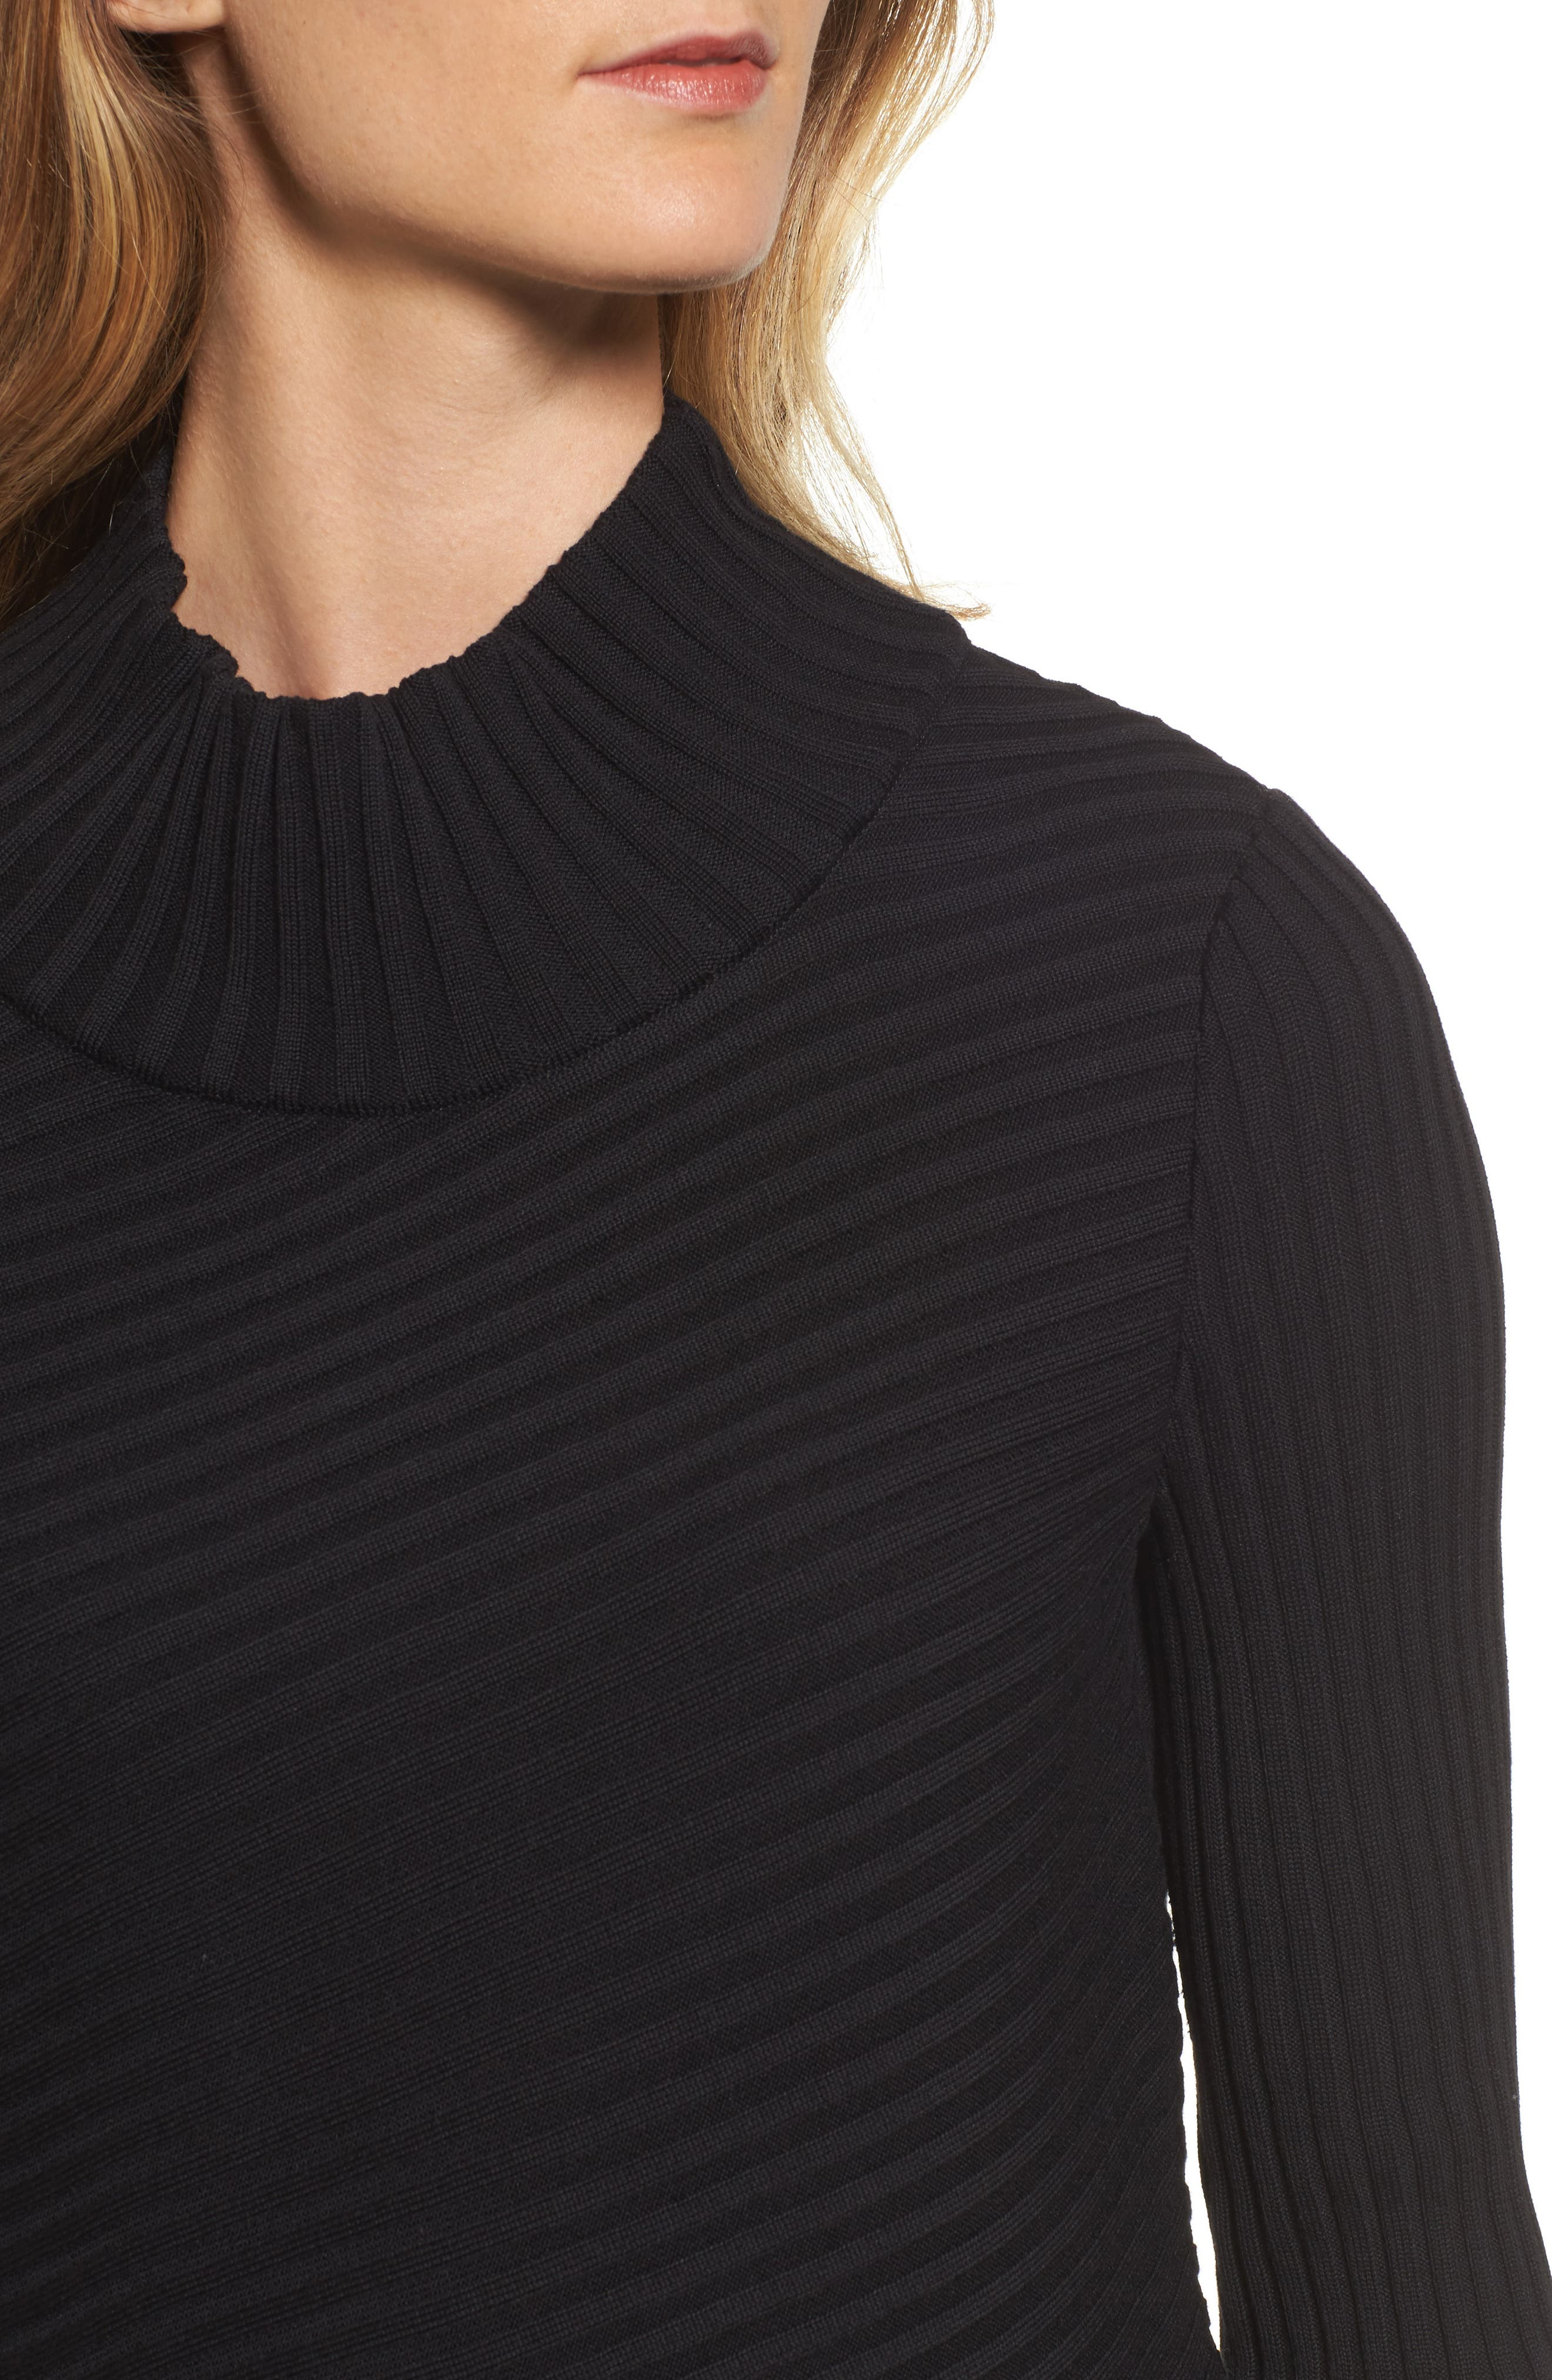 Ribbed Asymmetrical Sweater,                             Alternate thumbnail 4, color,                             001